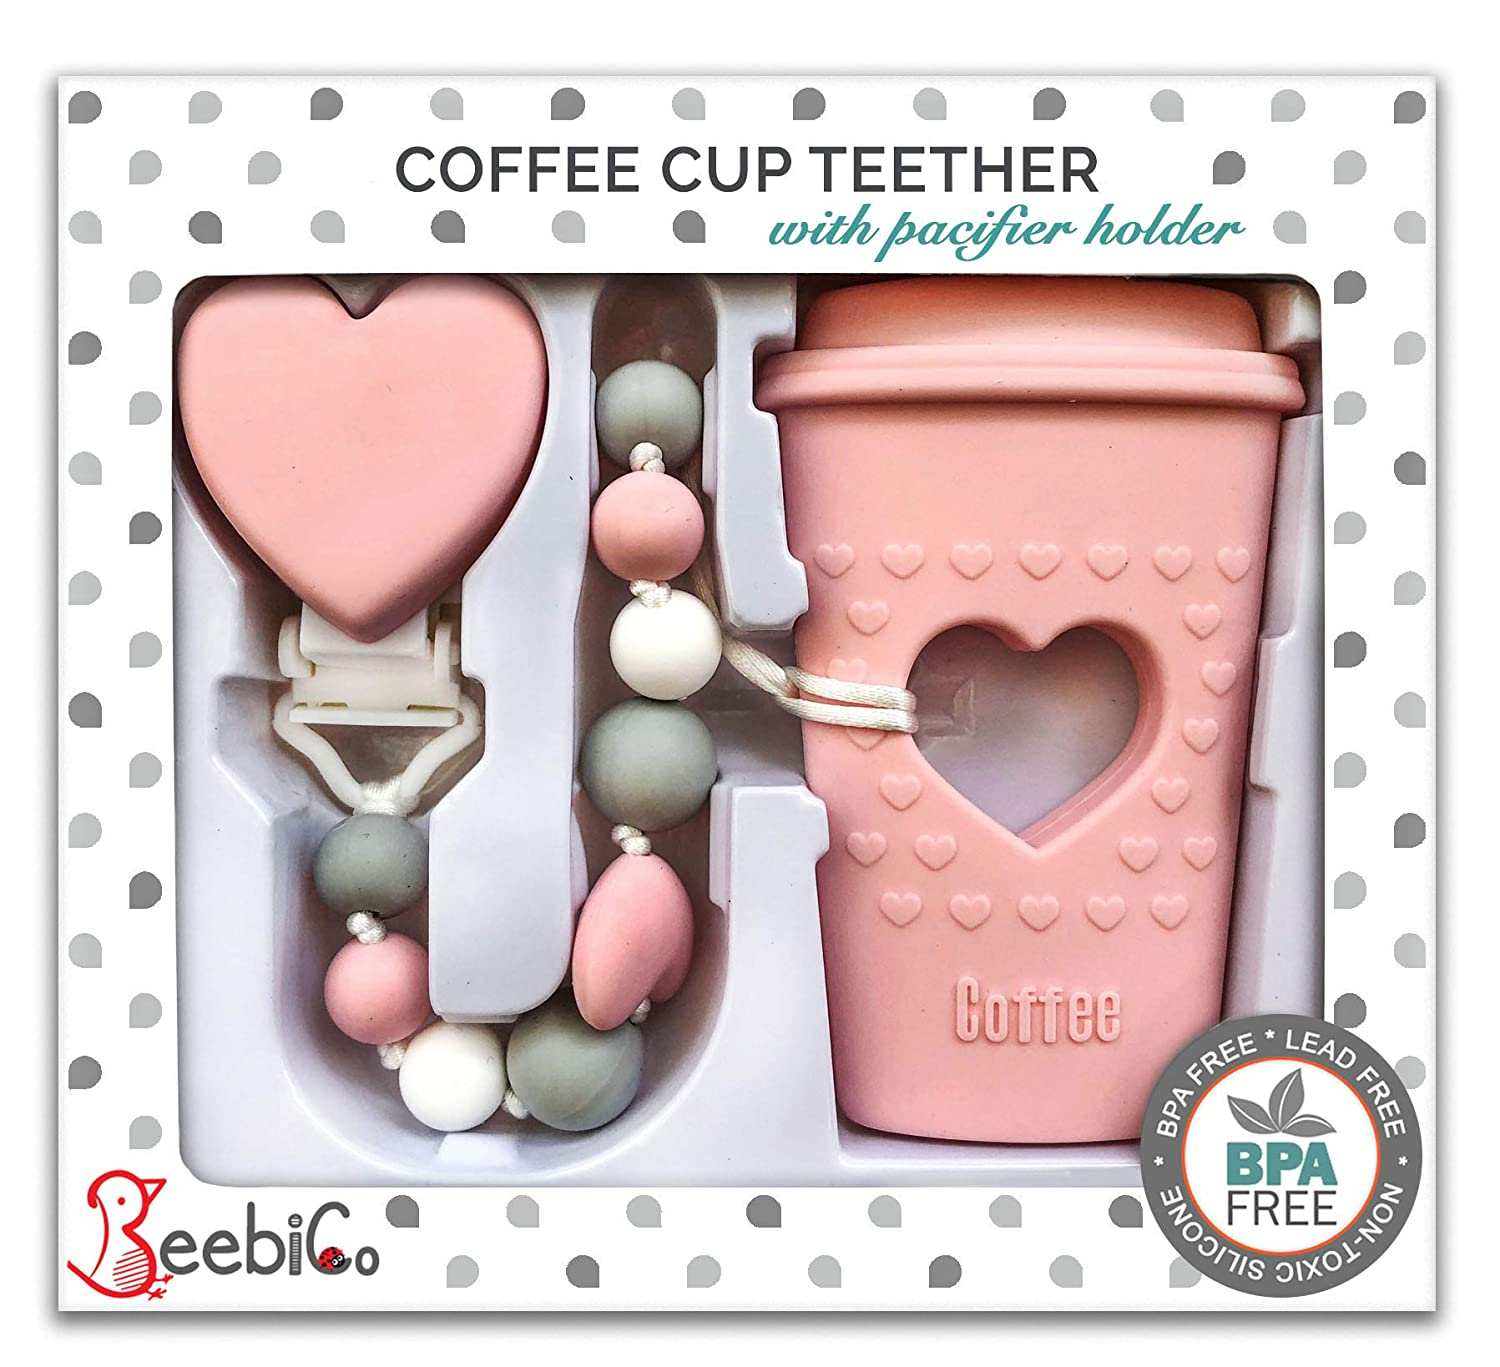 Amazon.com   BPA Free Pacifier Clip Holder Set - Baby Teething Toys -  Silicone Chew Beads and Coffee Cup Teether with Heart for Babies - Unique  Newborn Baby ... 4f183c304c